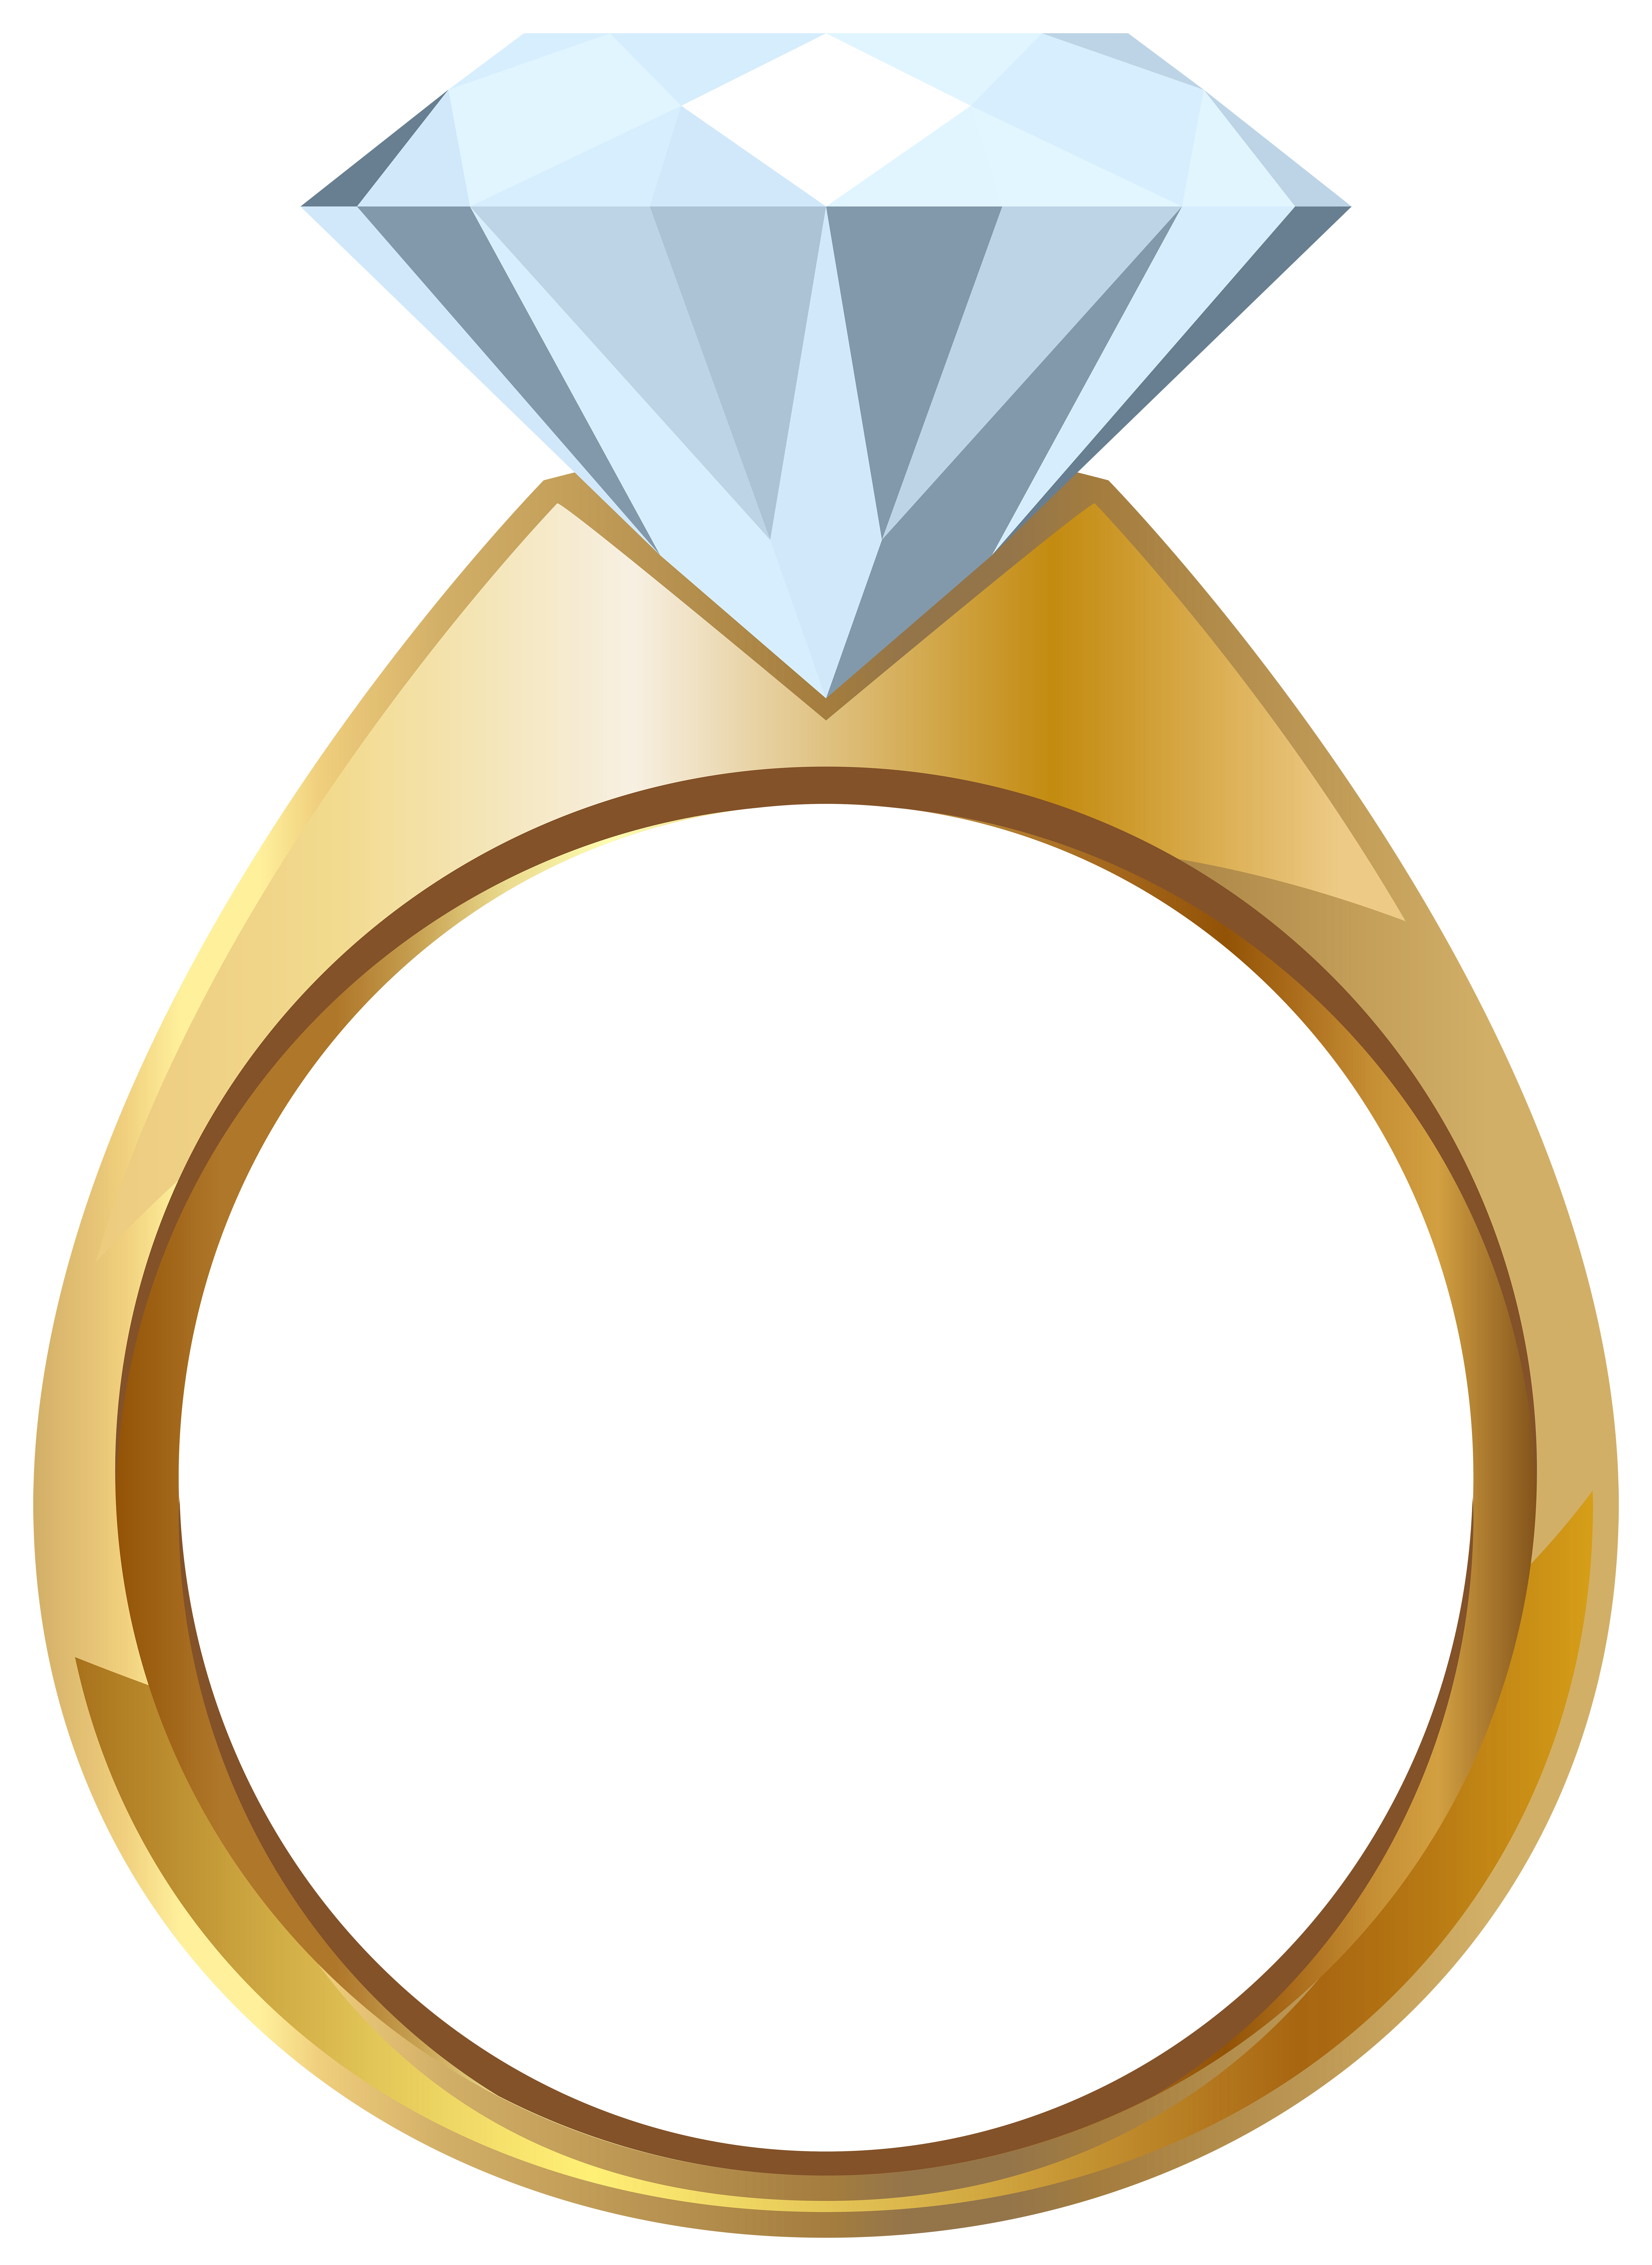 Jewelry clipart ring ceremony. Gold engagement png transparent